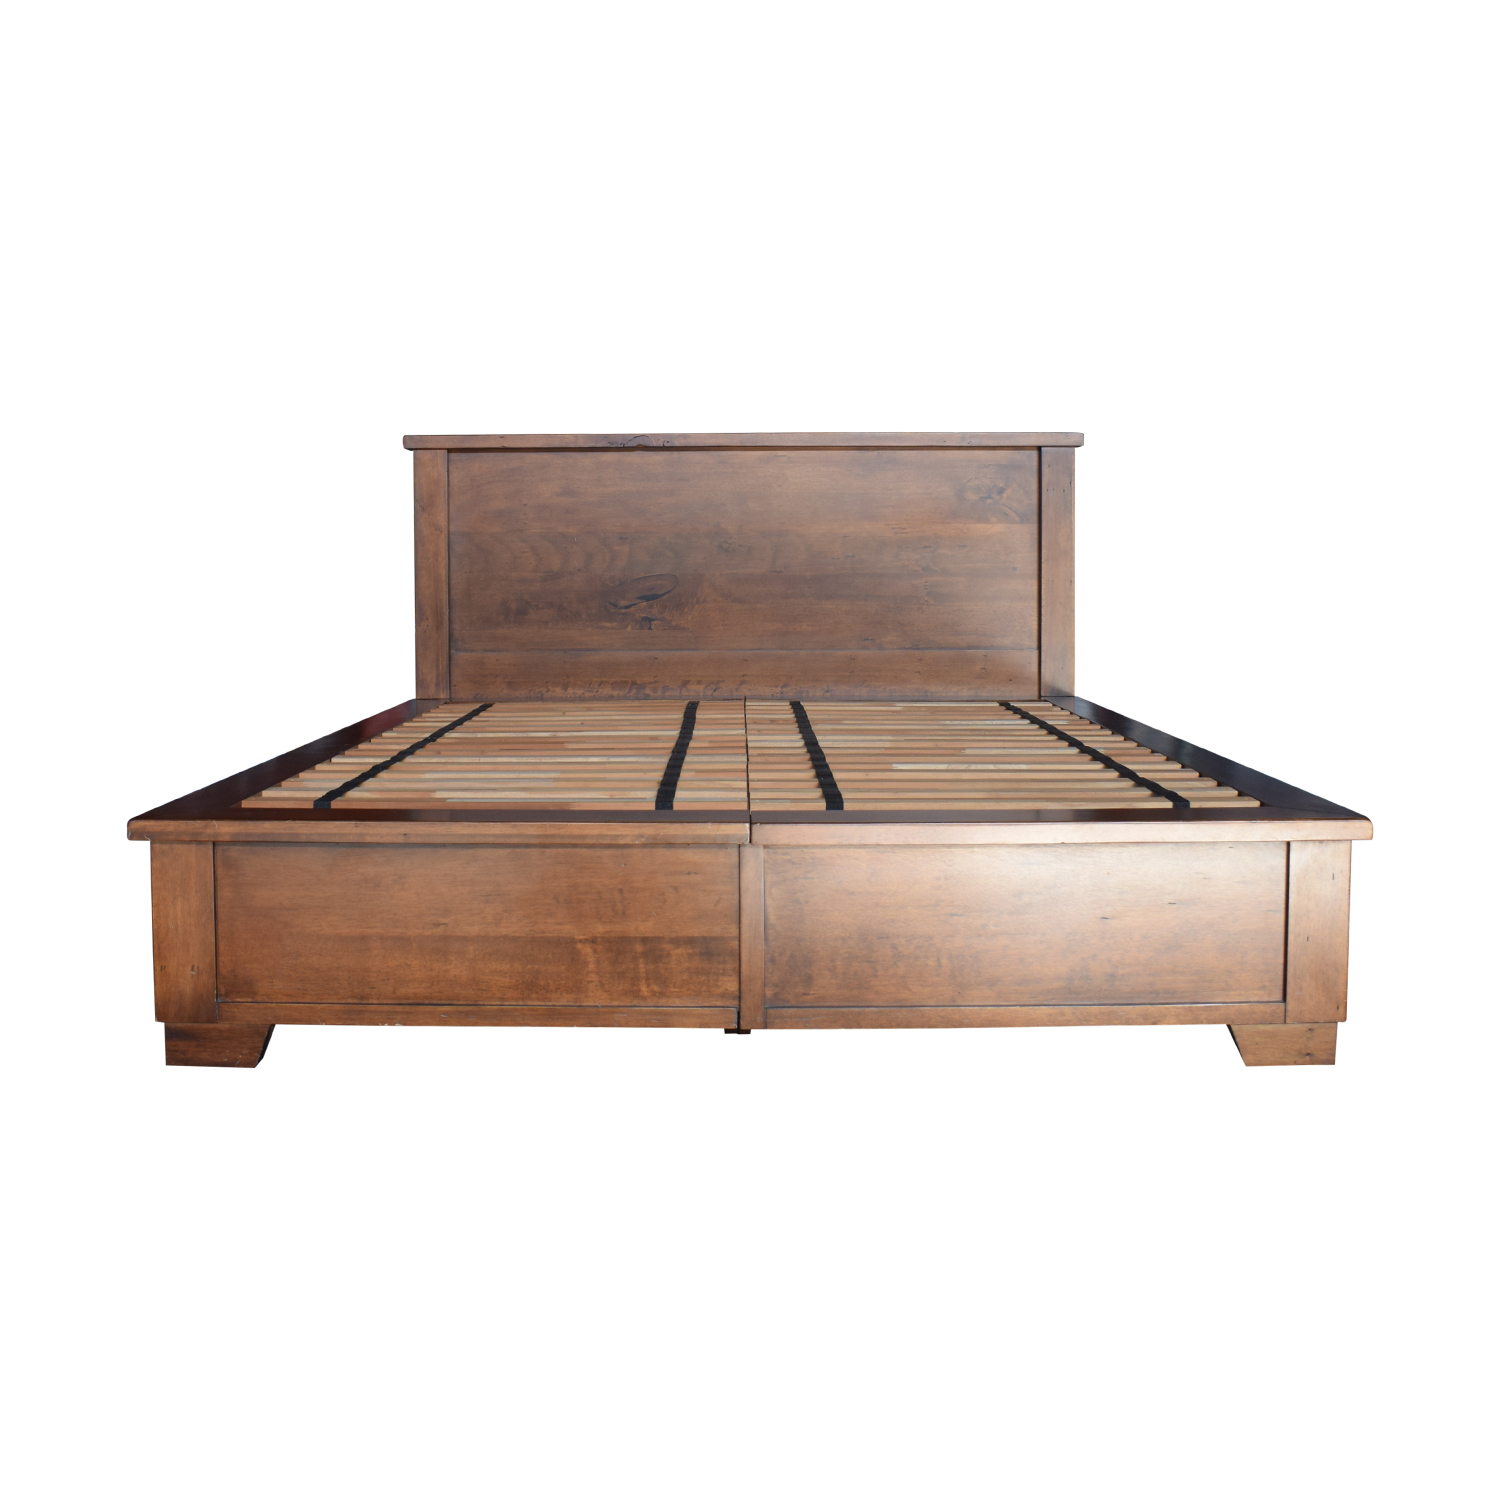 Buy A Bed 71 Off Pottery Barn Pottery Barn Sumatra Wood King Platform Bed With Storage Beds